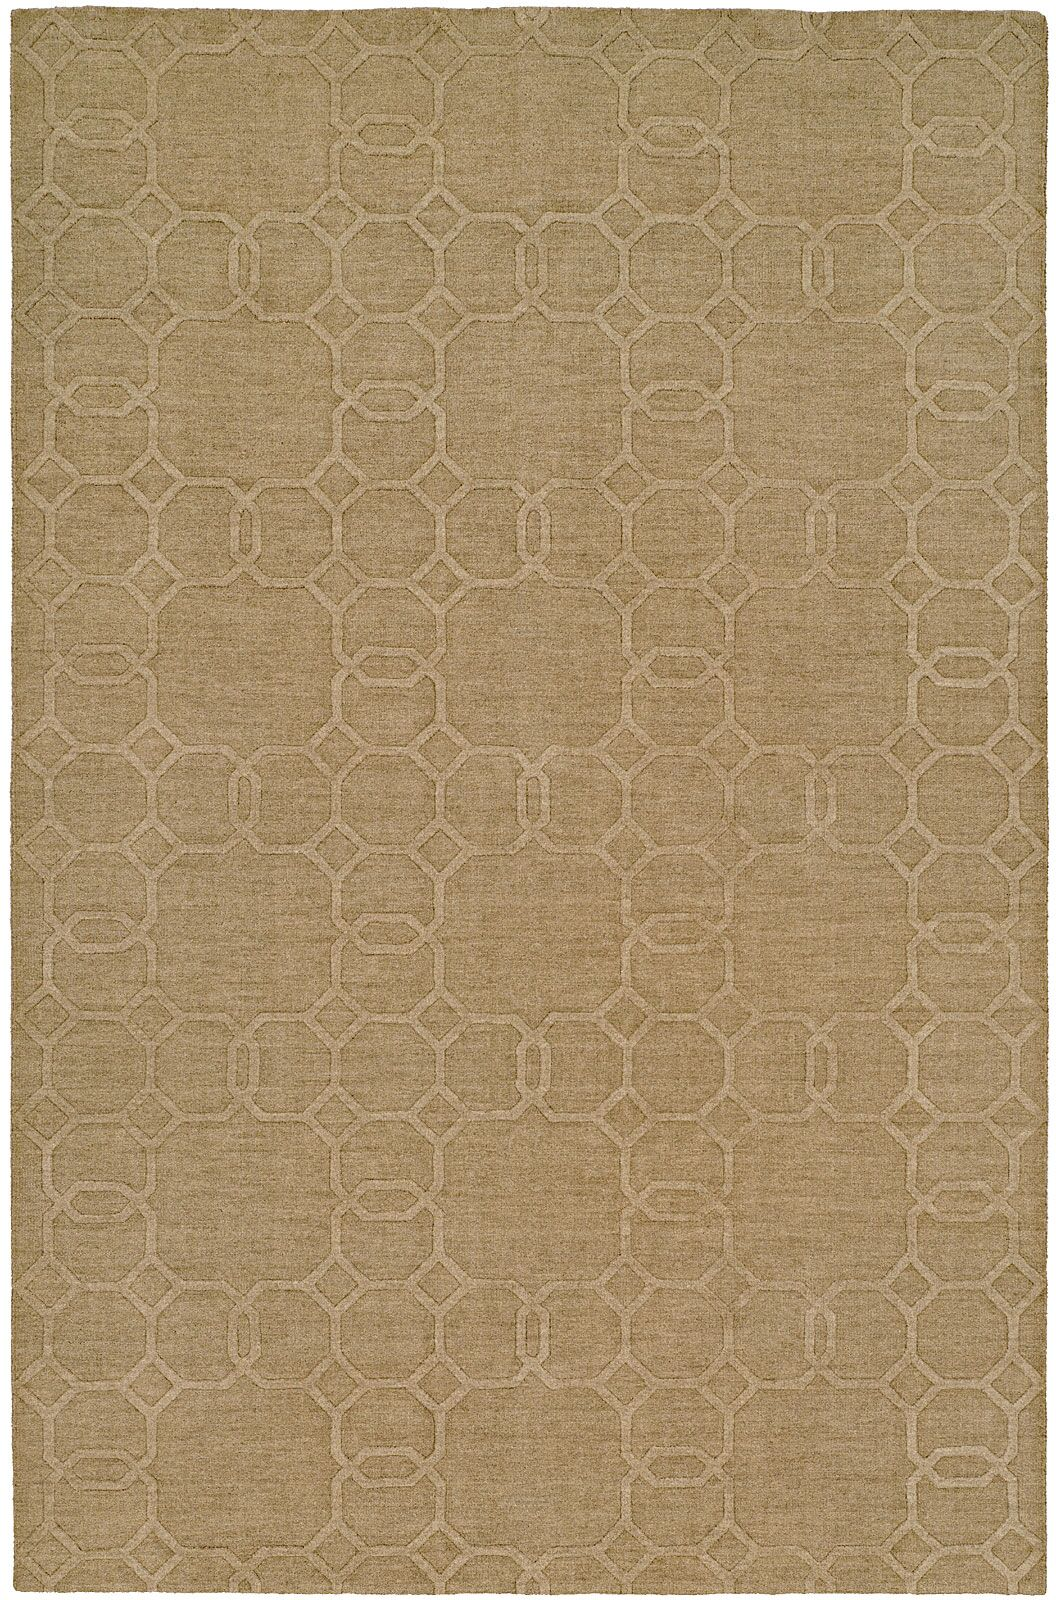 Buch Hand-Woven Beige Area Rug Rug Size: 8' x 10'